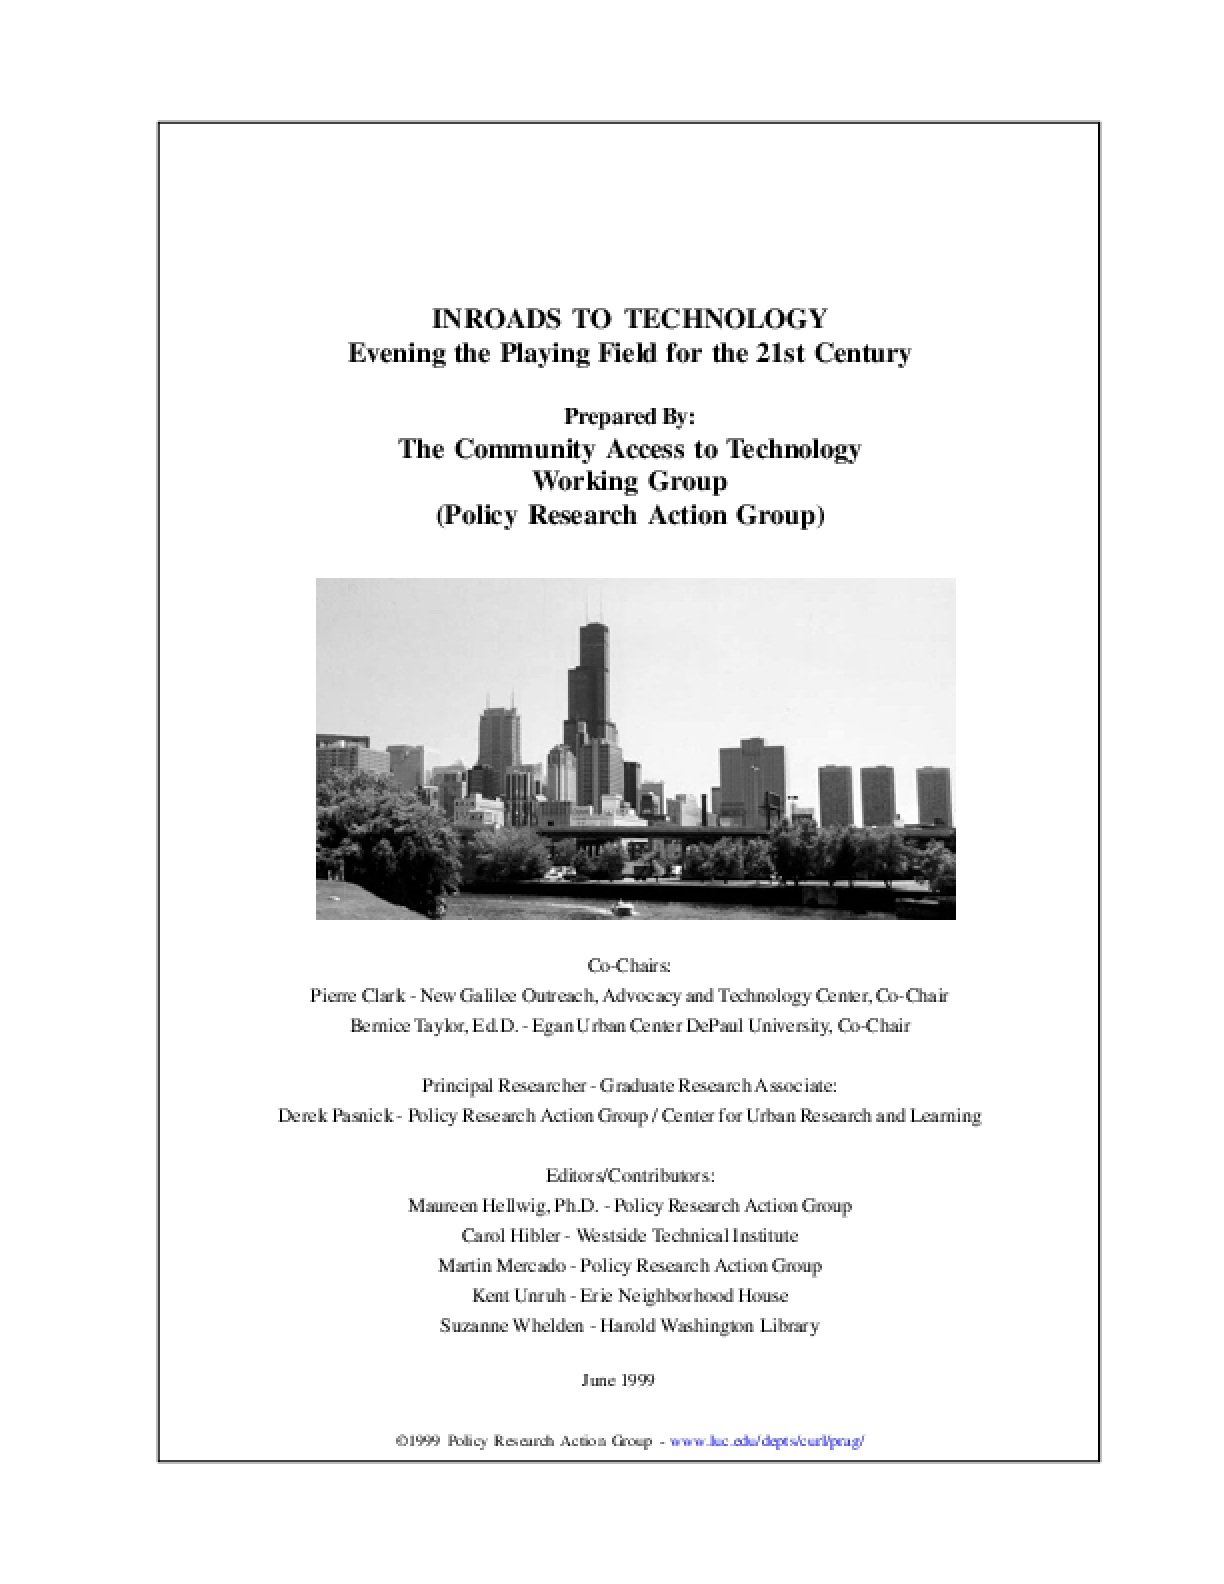 Inroads to Technology: Evening the Playing Field for the 21st Century